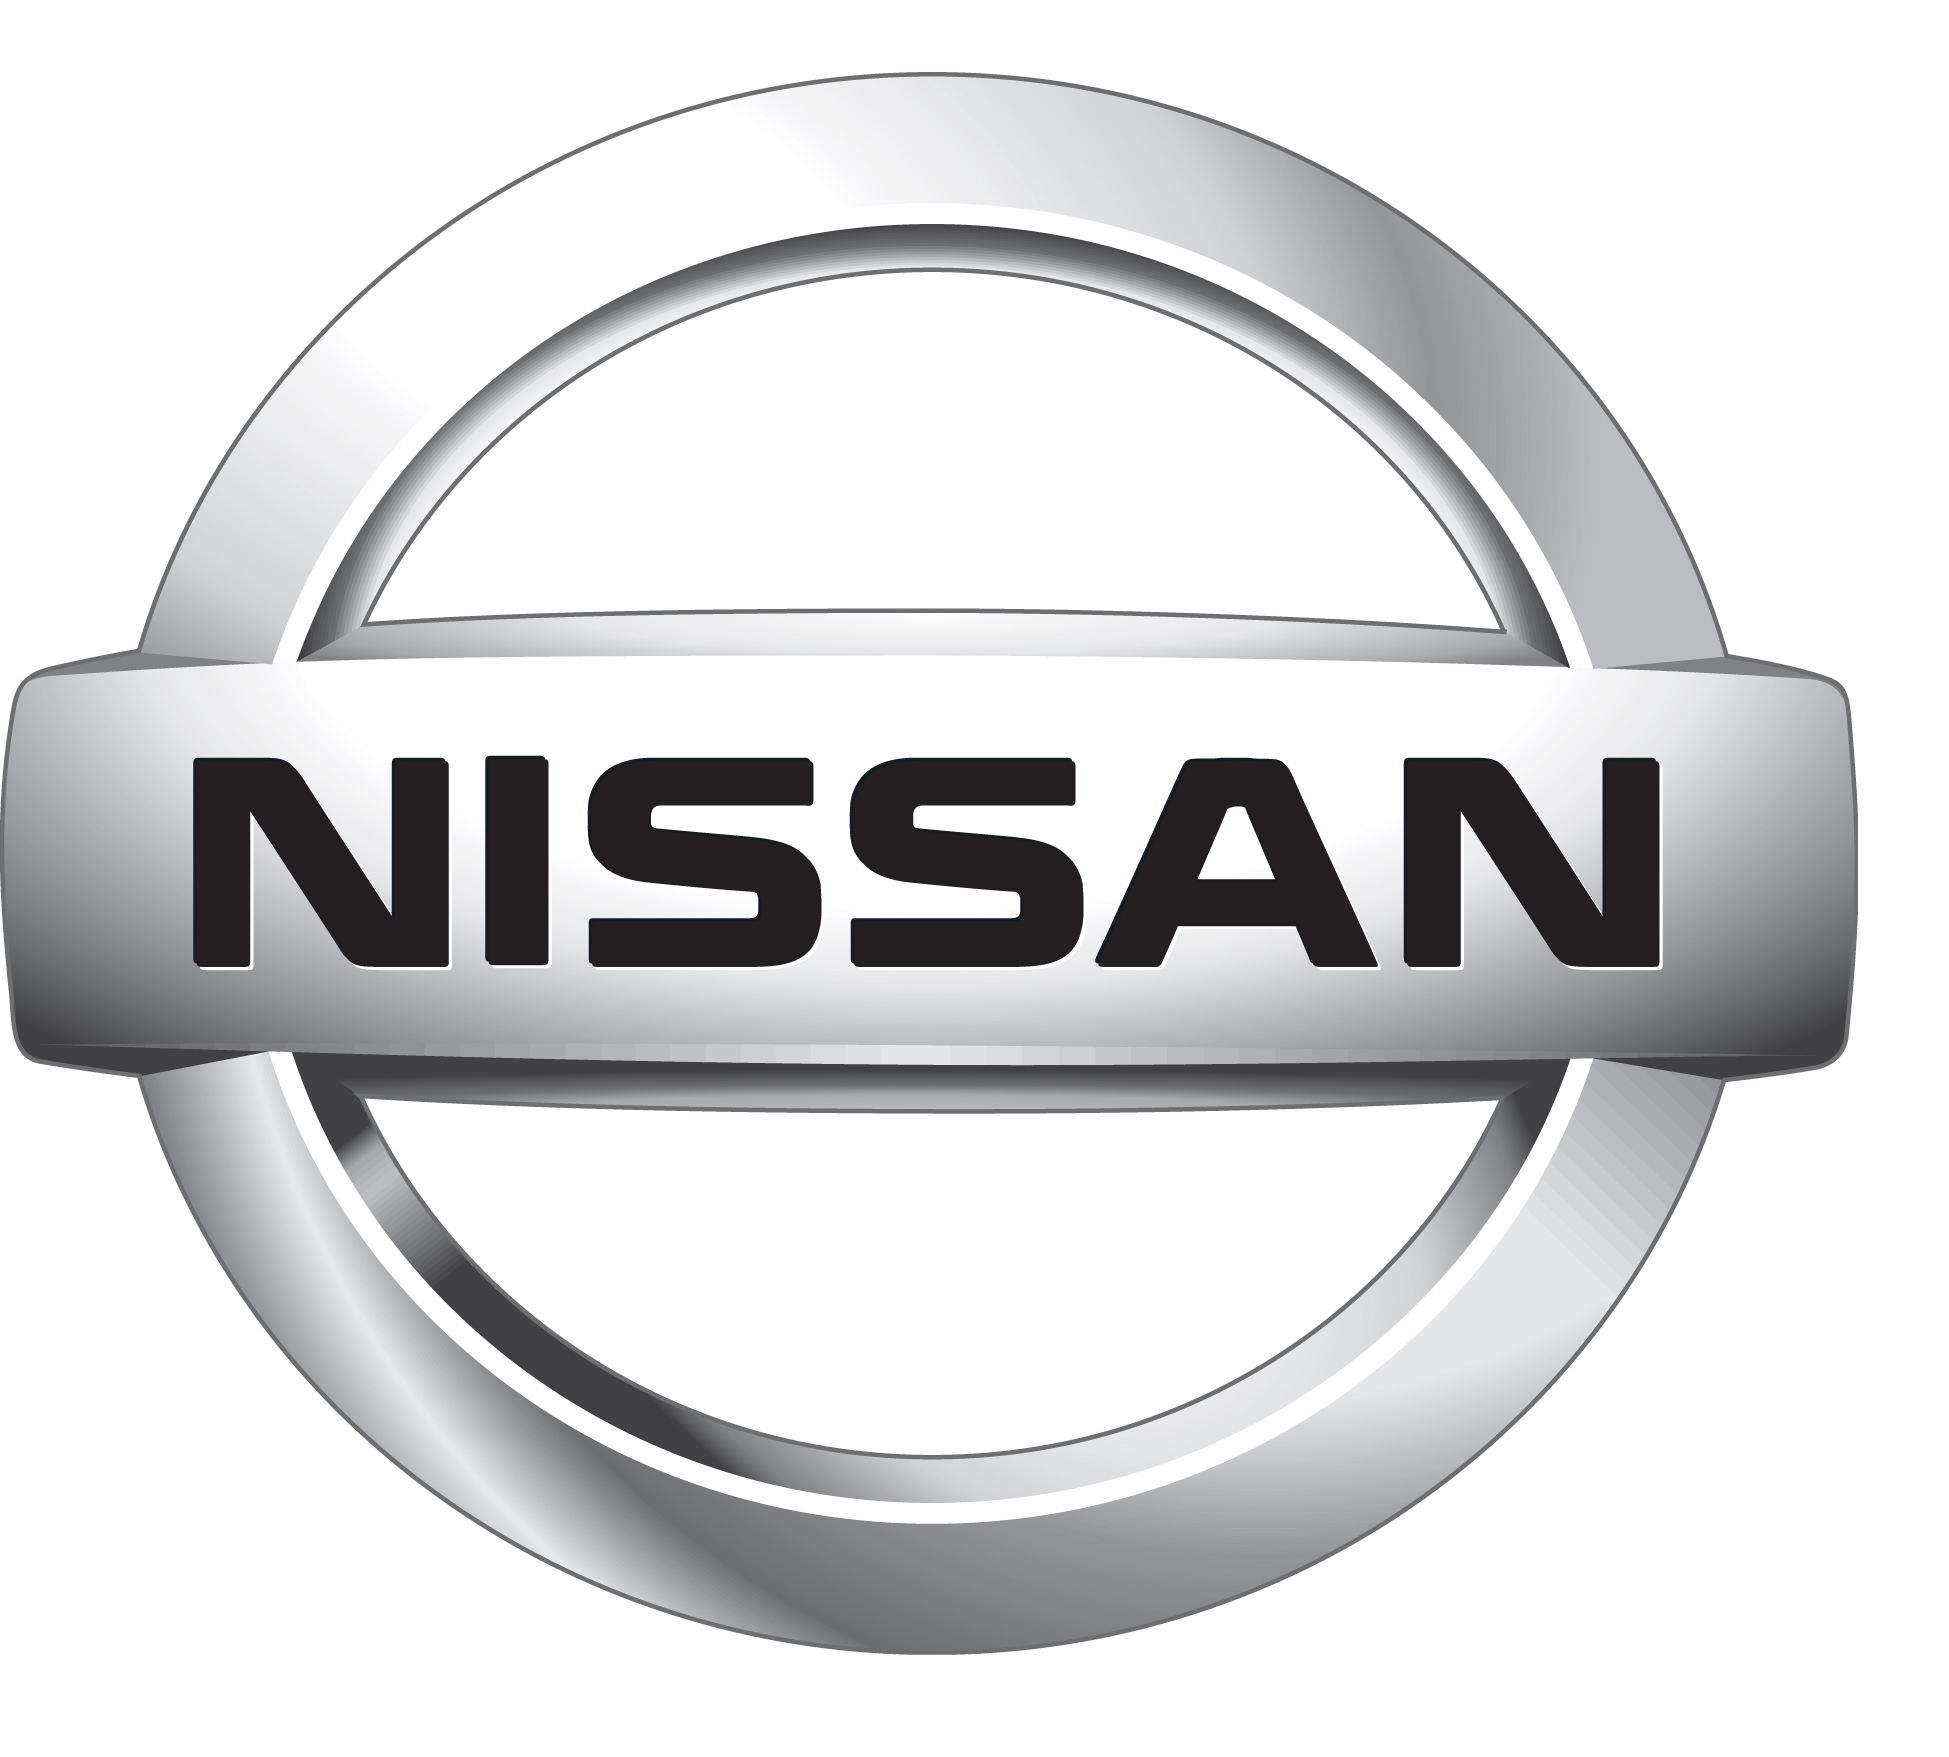 one of the characteristics of the nissan logo